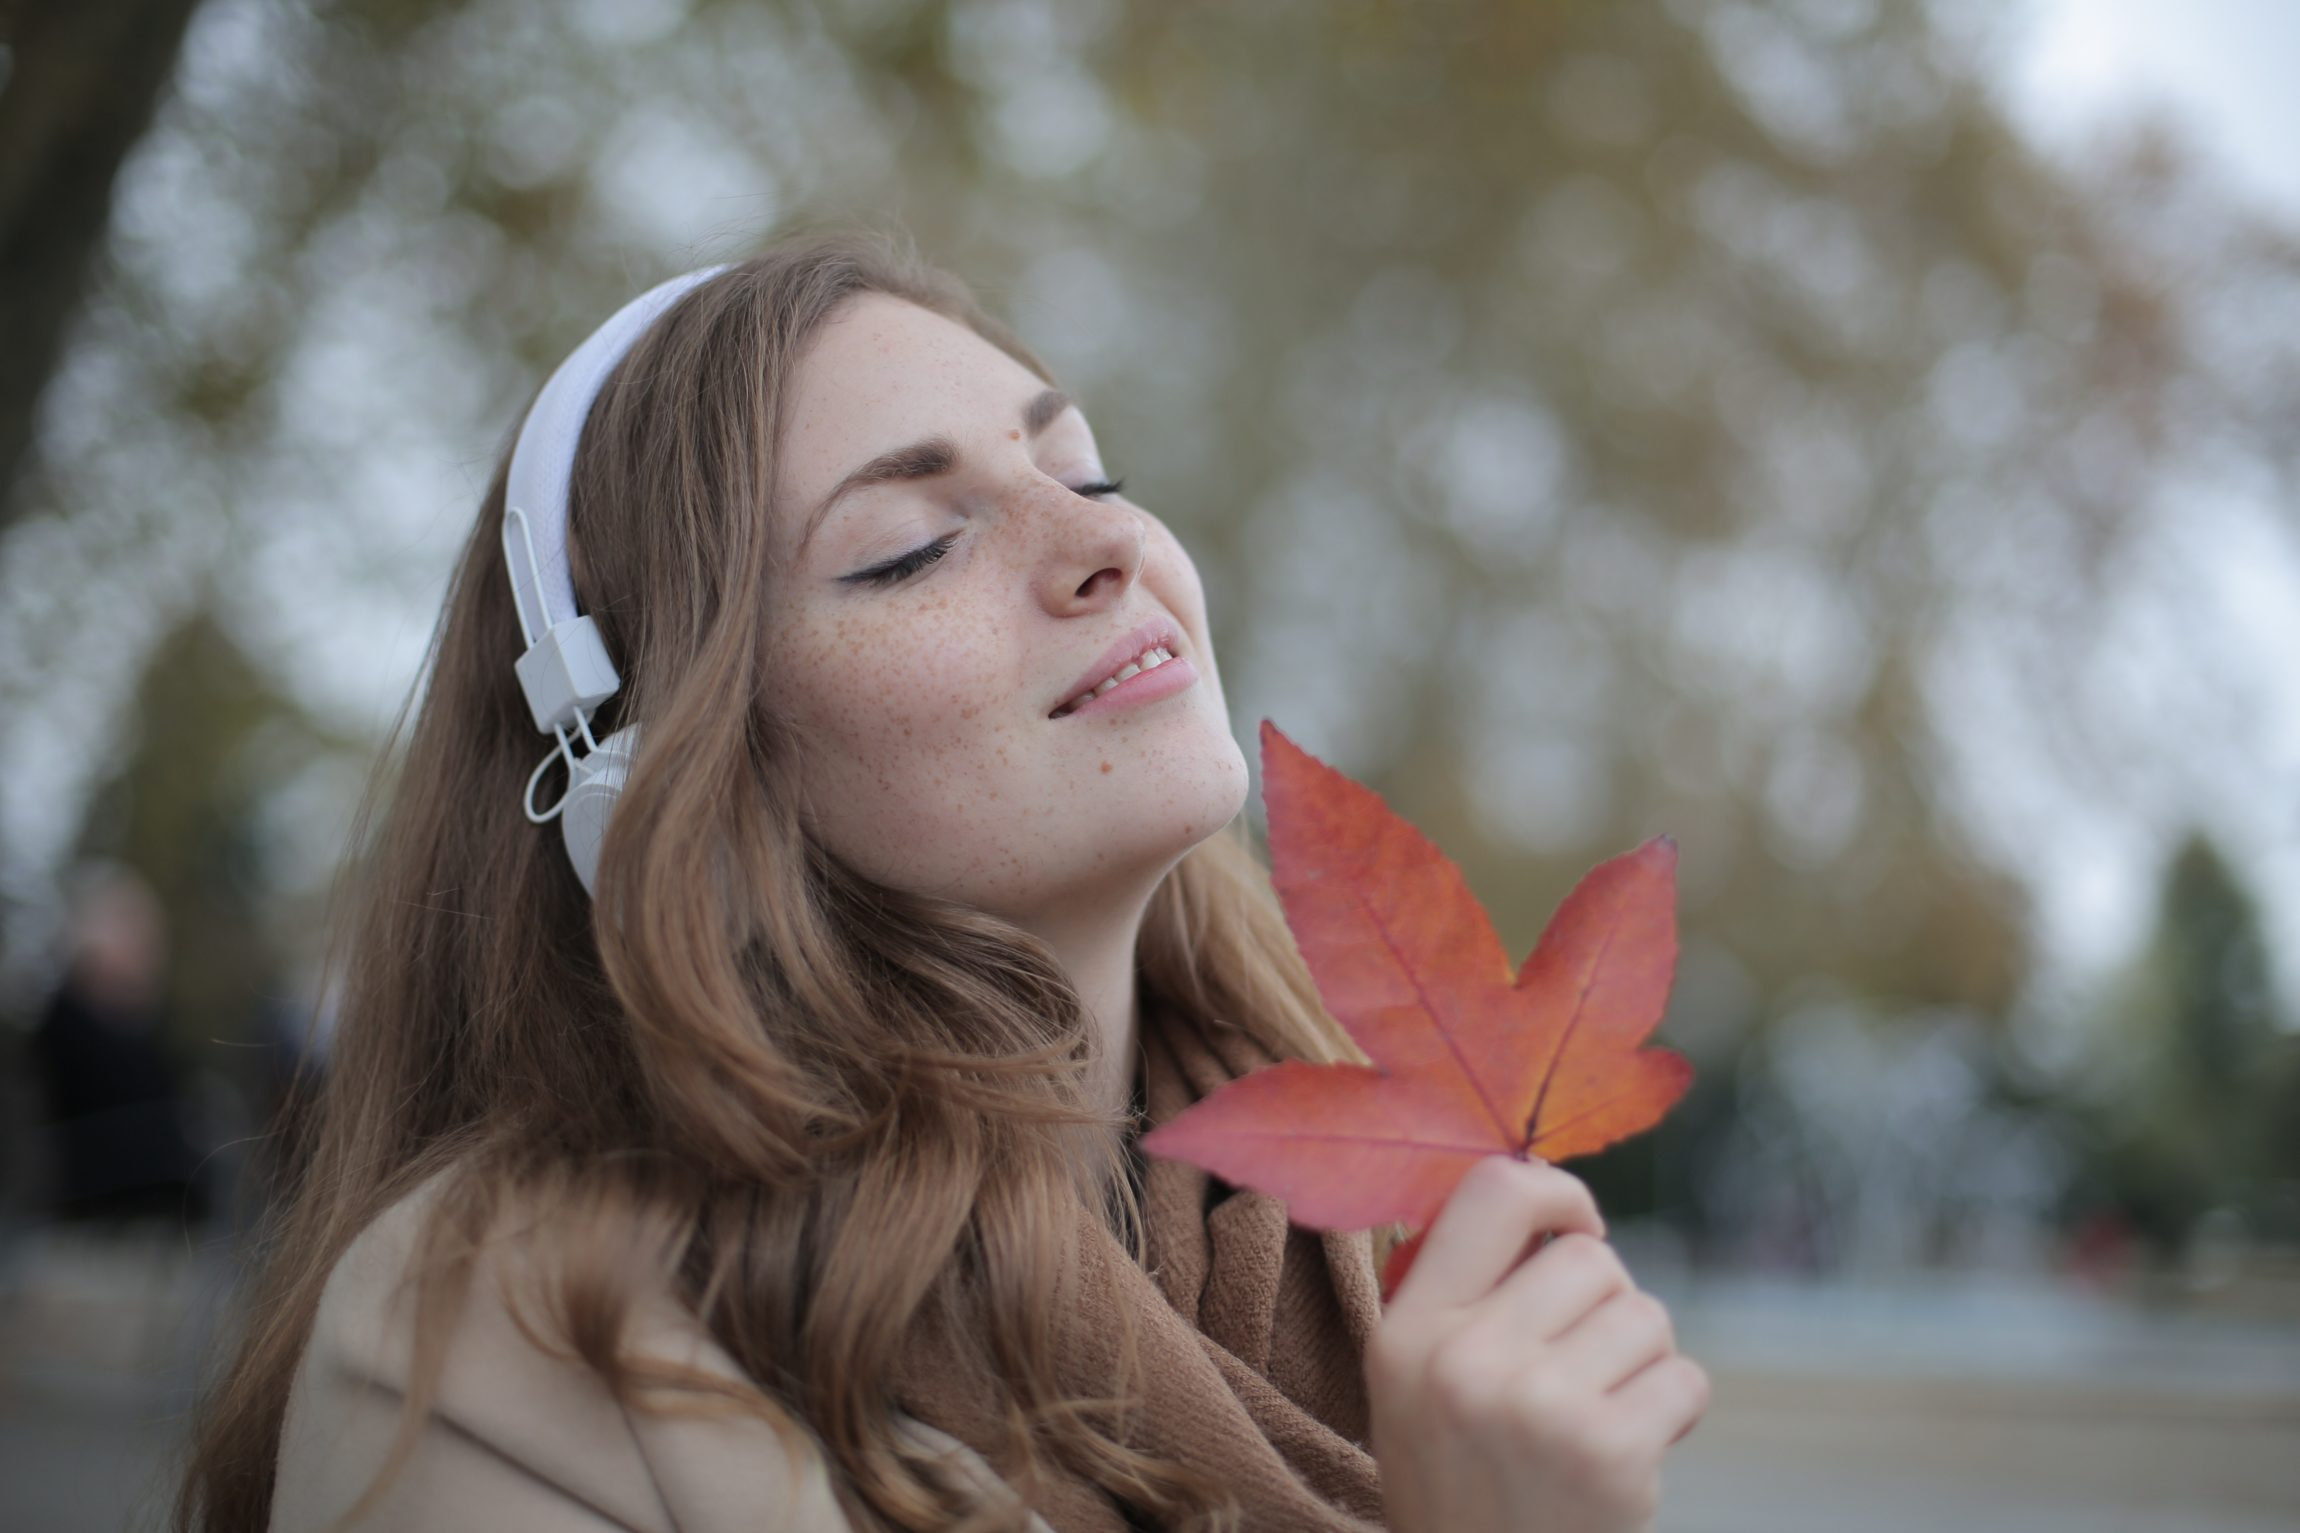 College woman with headphones on and eyes closed smelling a leaf